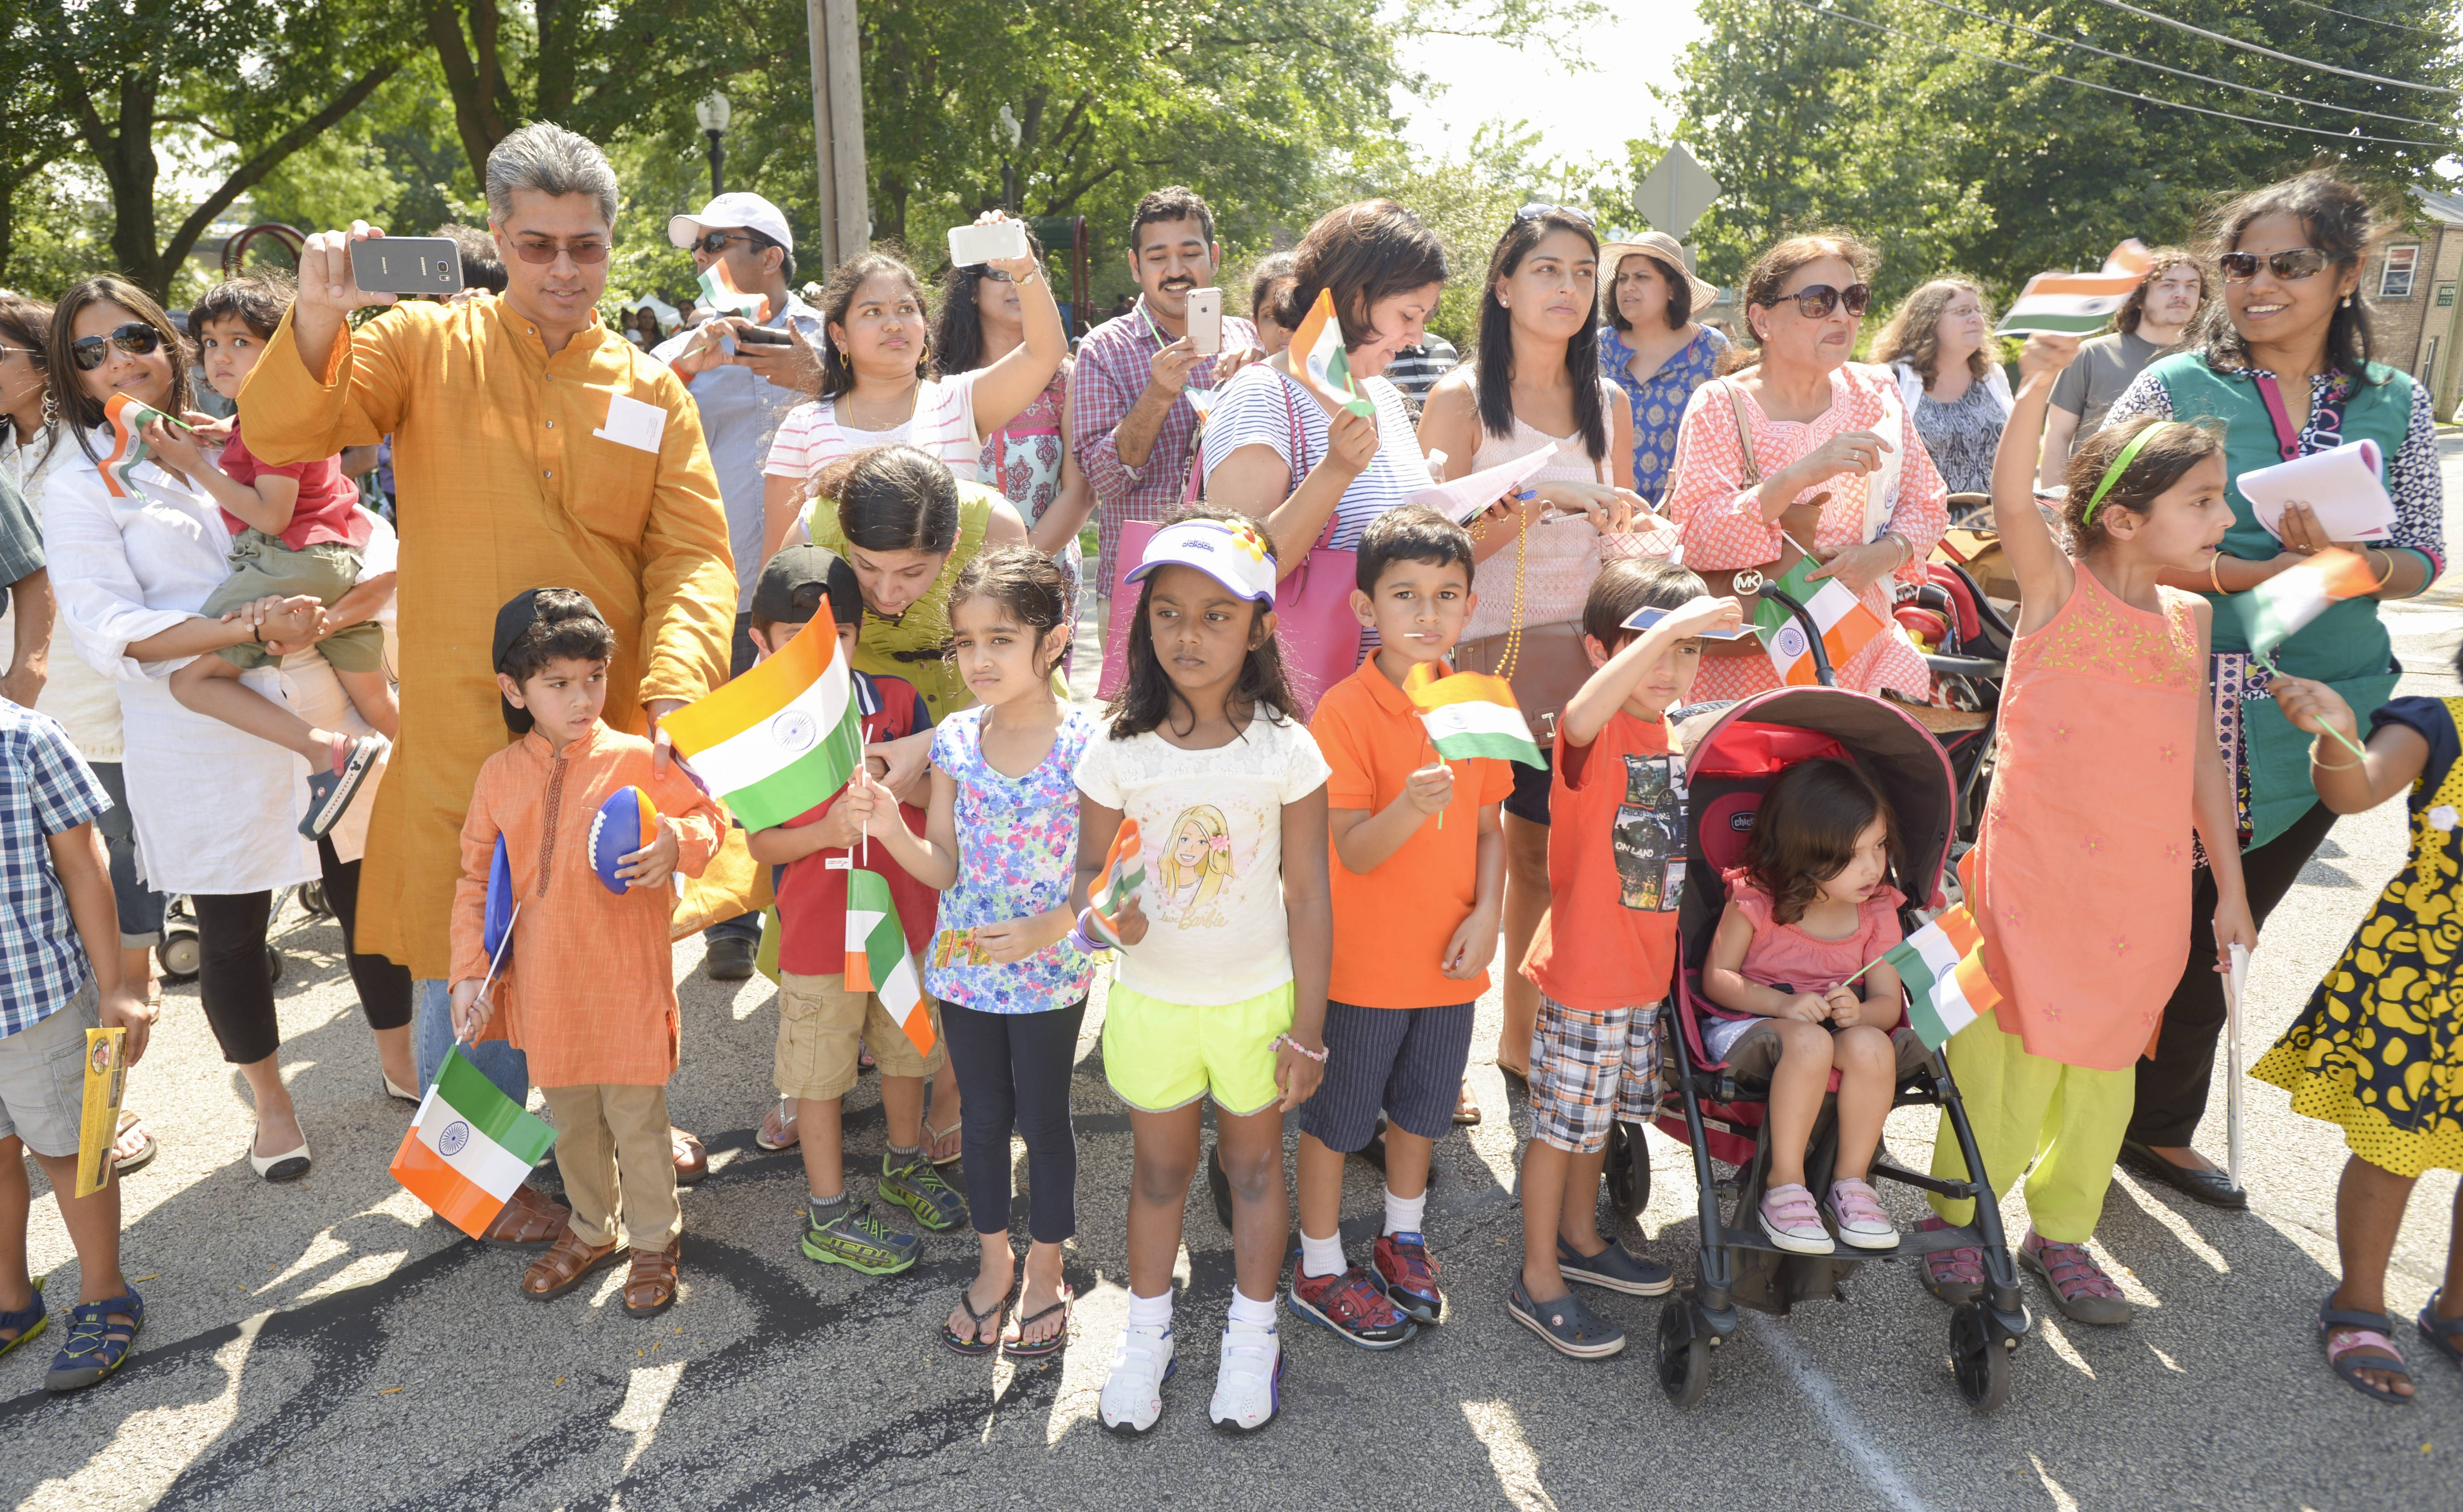 Crowds are expected to gather along Porter Avenue, Main Street, Hillside Road and West Street near downtown Naperville for the second annual India Day Parade at 5 p.m. Sunday.